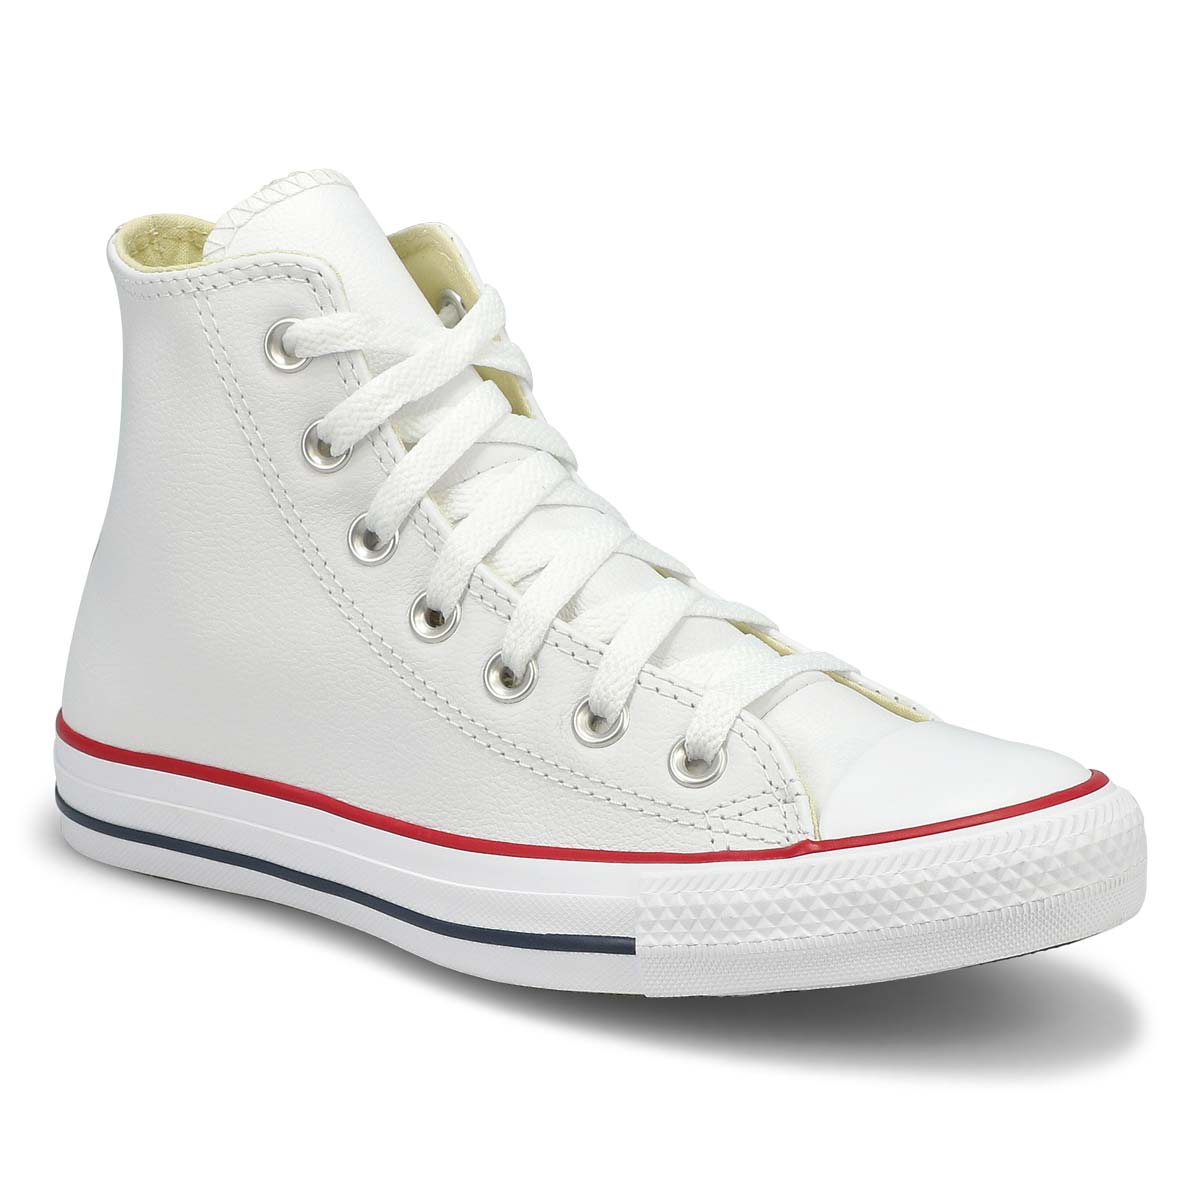 Men's CT ALL STAR LEATHER white hi sneakers